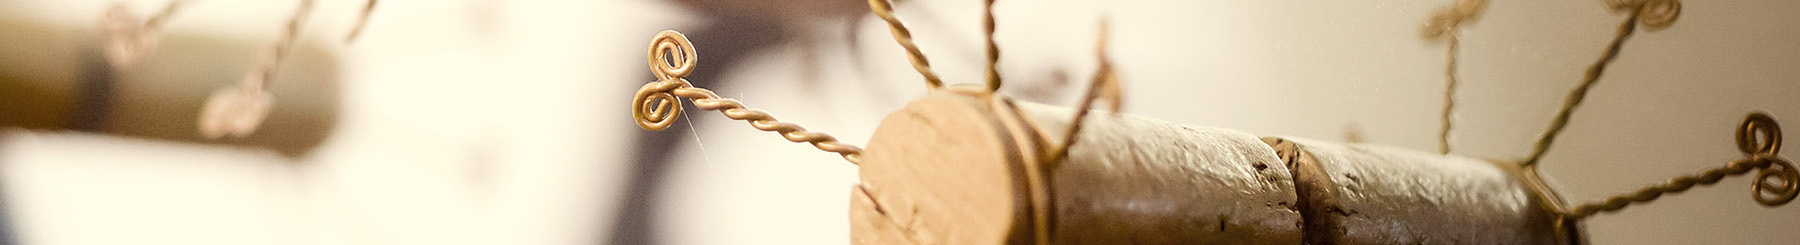 Details of the cork in the manufacturing process.